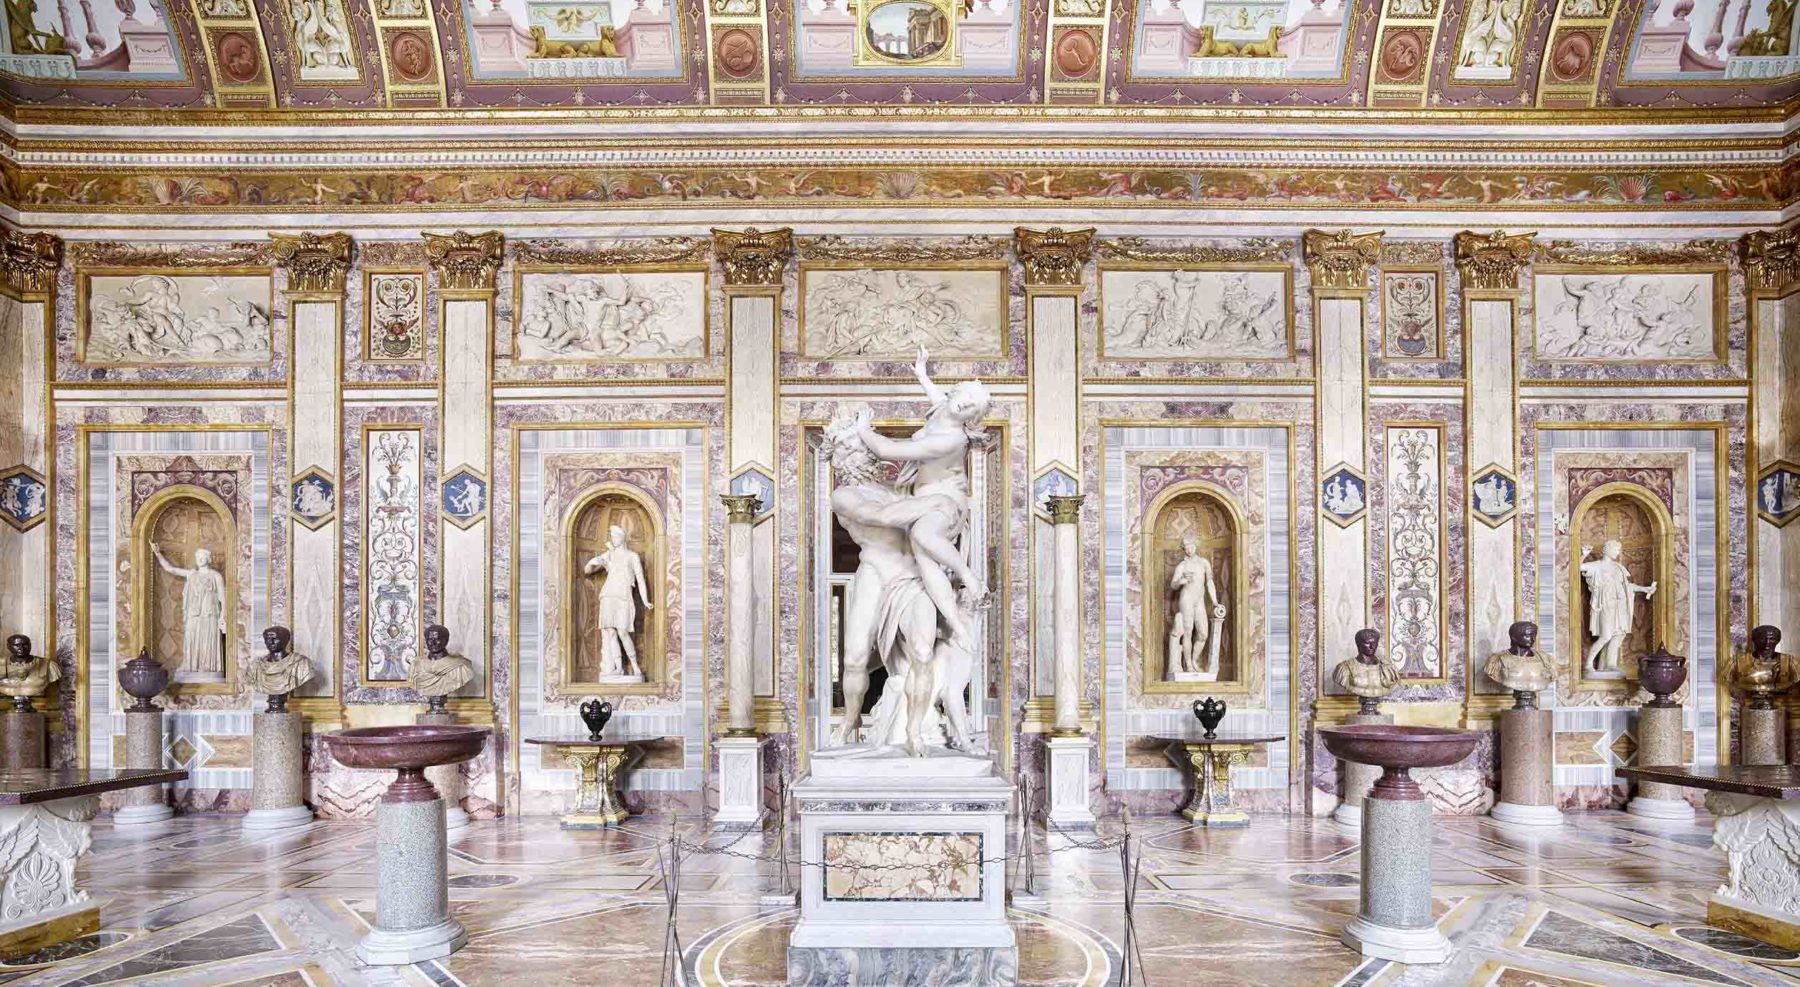 CANDIDA HÖFER for the GALLERIA BORGHESE